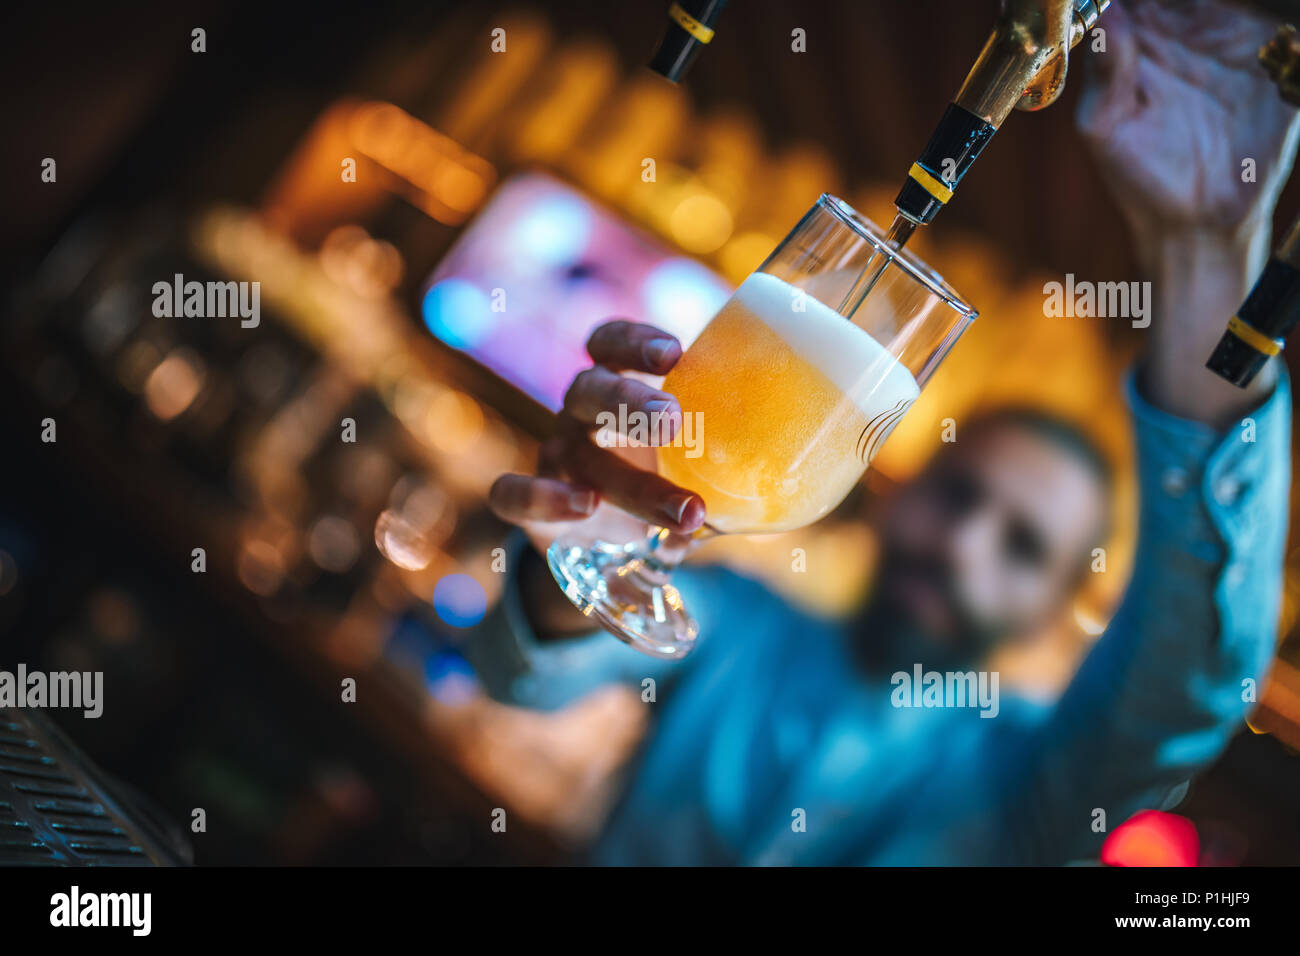 Barmen or brewer filling glass with beer. Barmen is pouring lager beer to glass from  beer taps. Bar or night club interior. - Stock Image